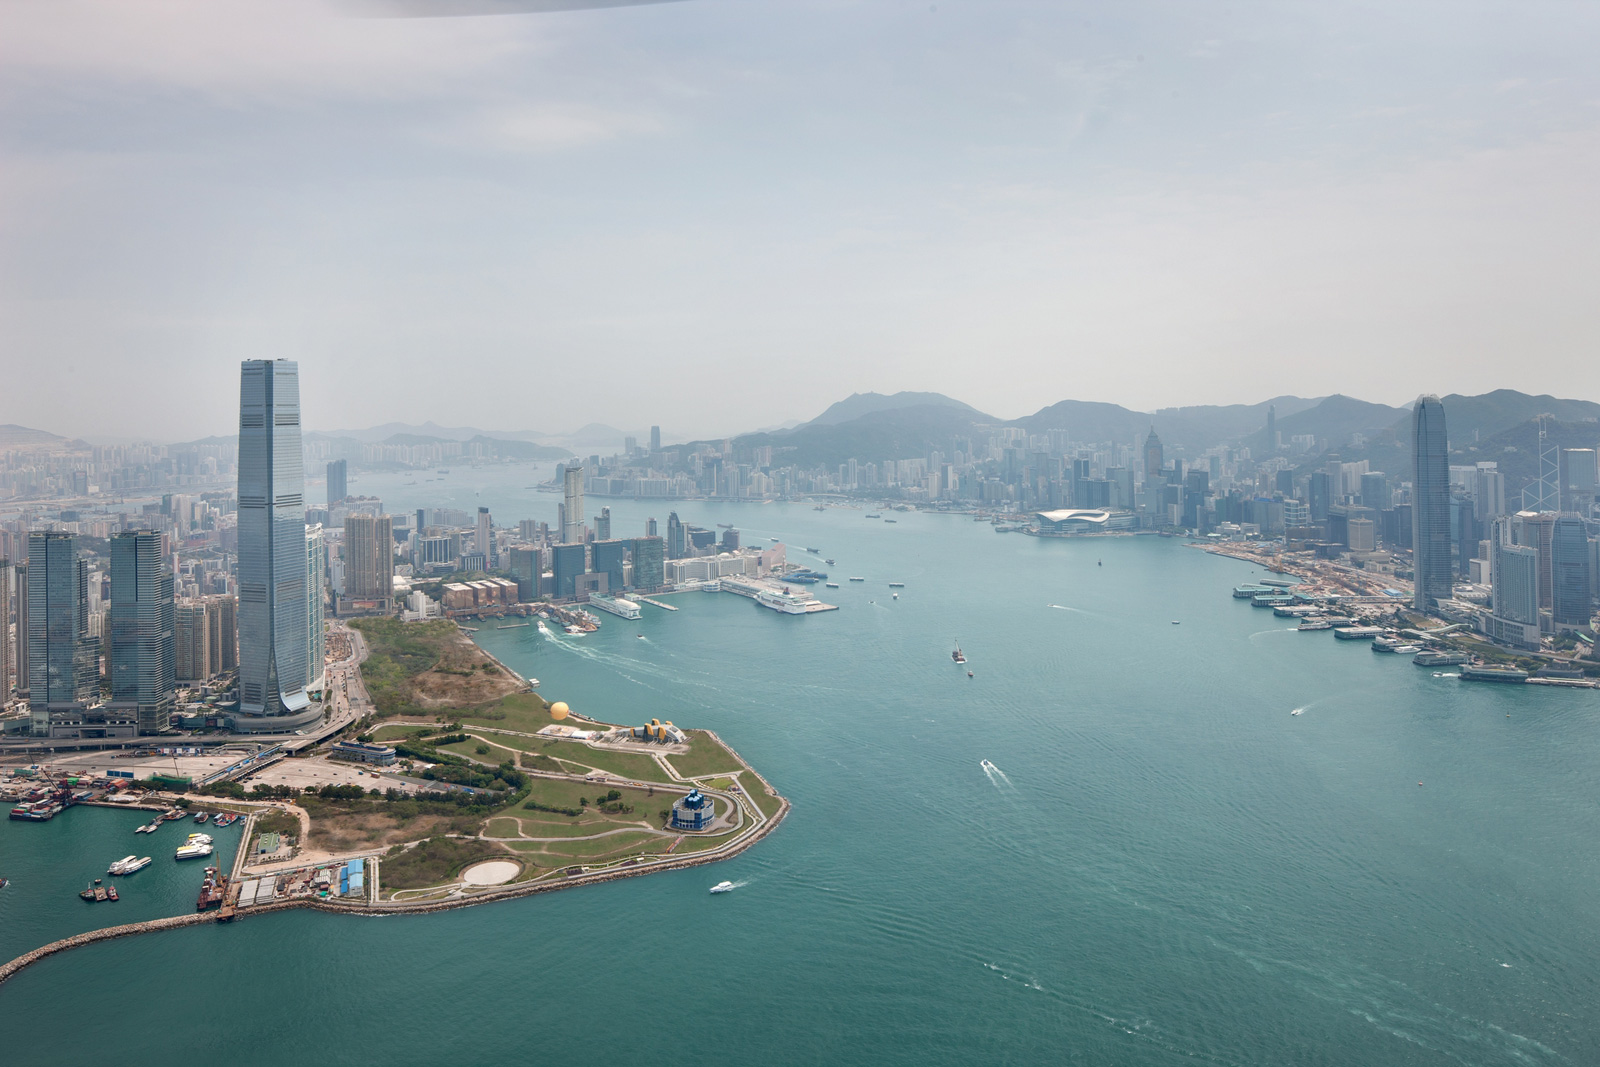 Aerial View of The Ritz-Carlton, Hong Kong Hotel and Harbor